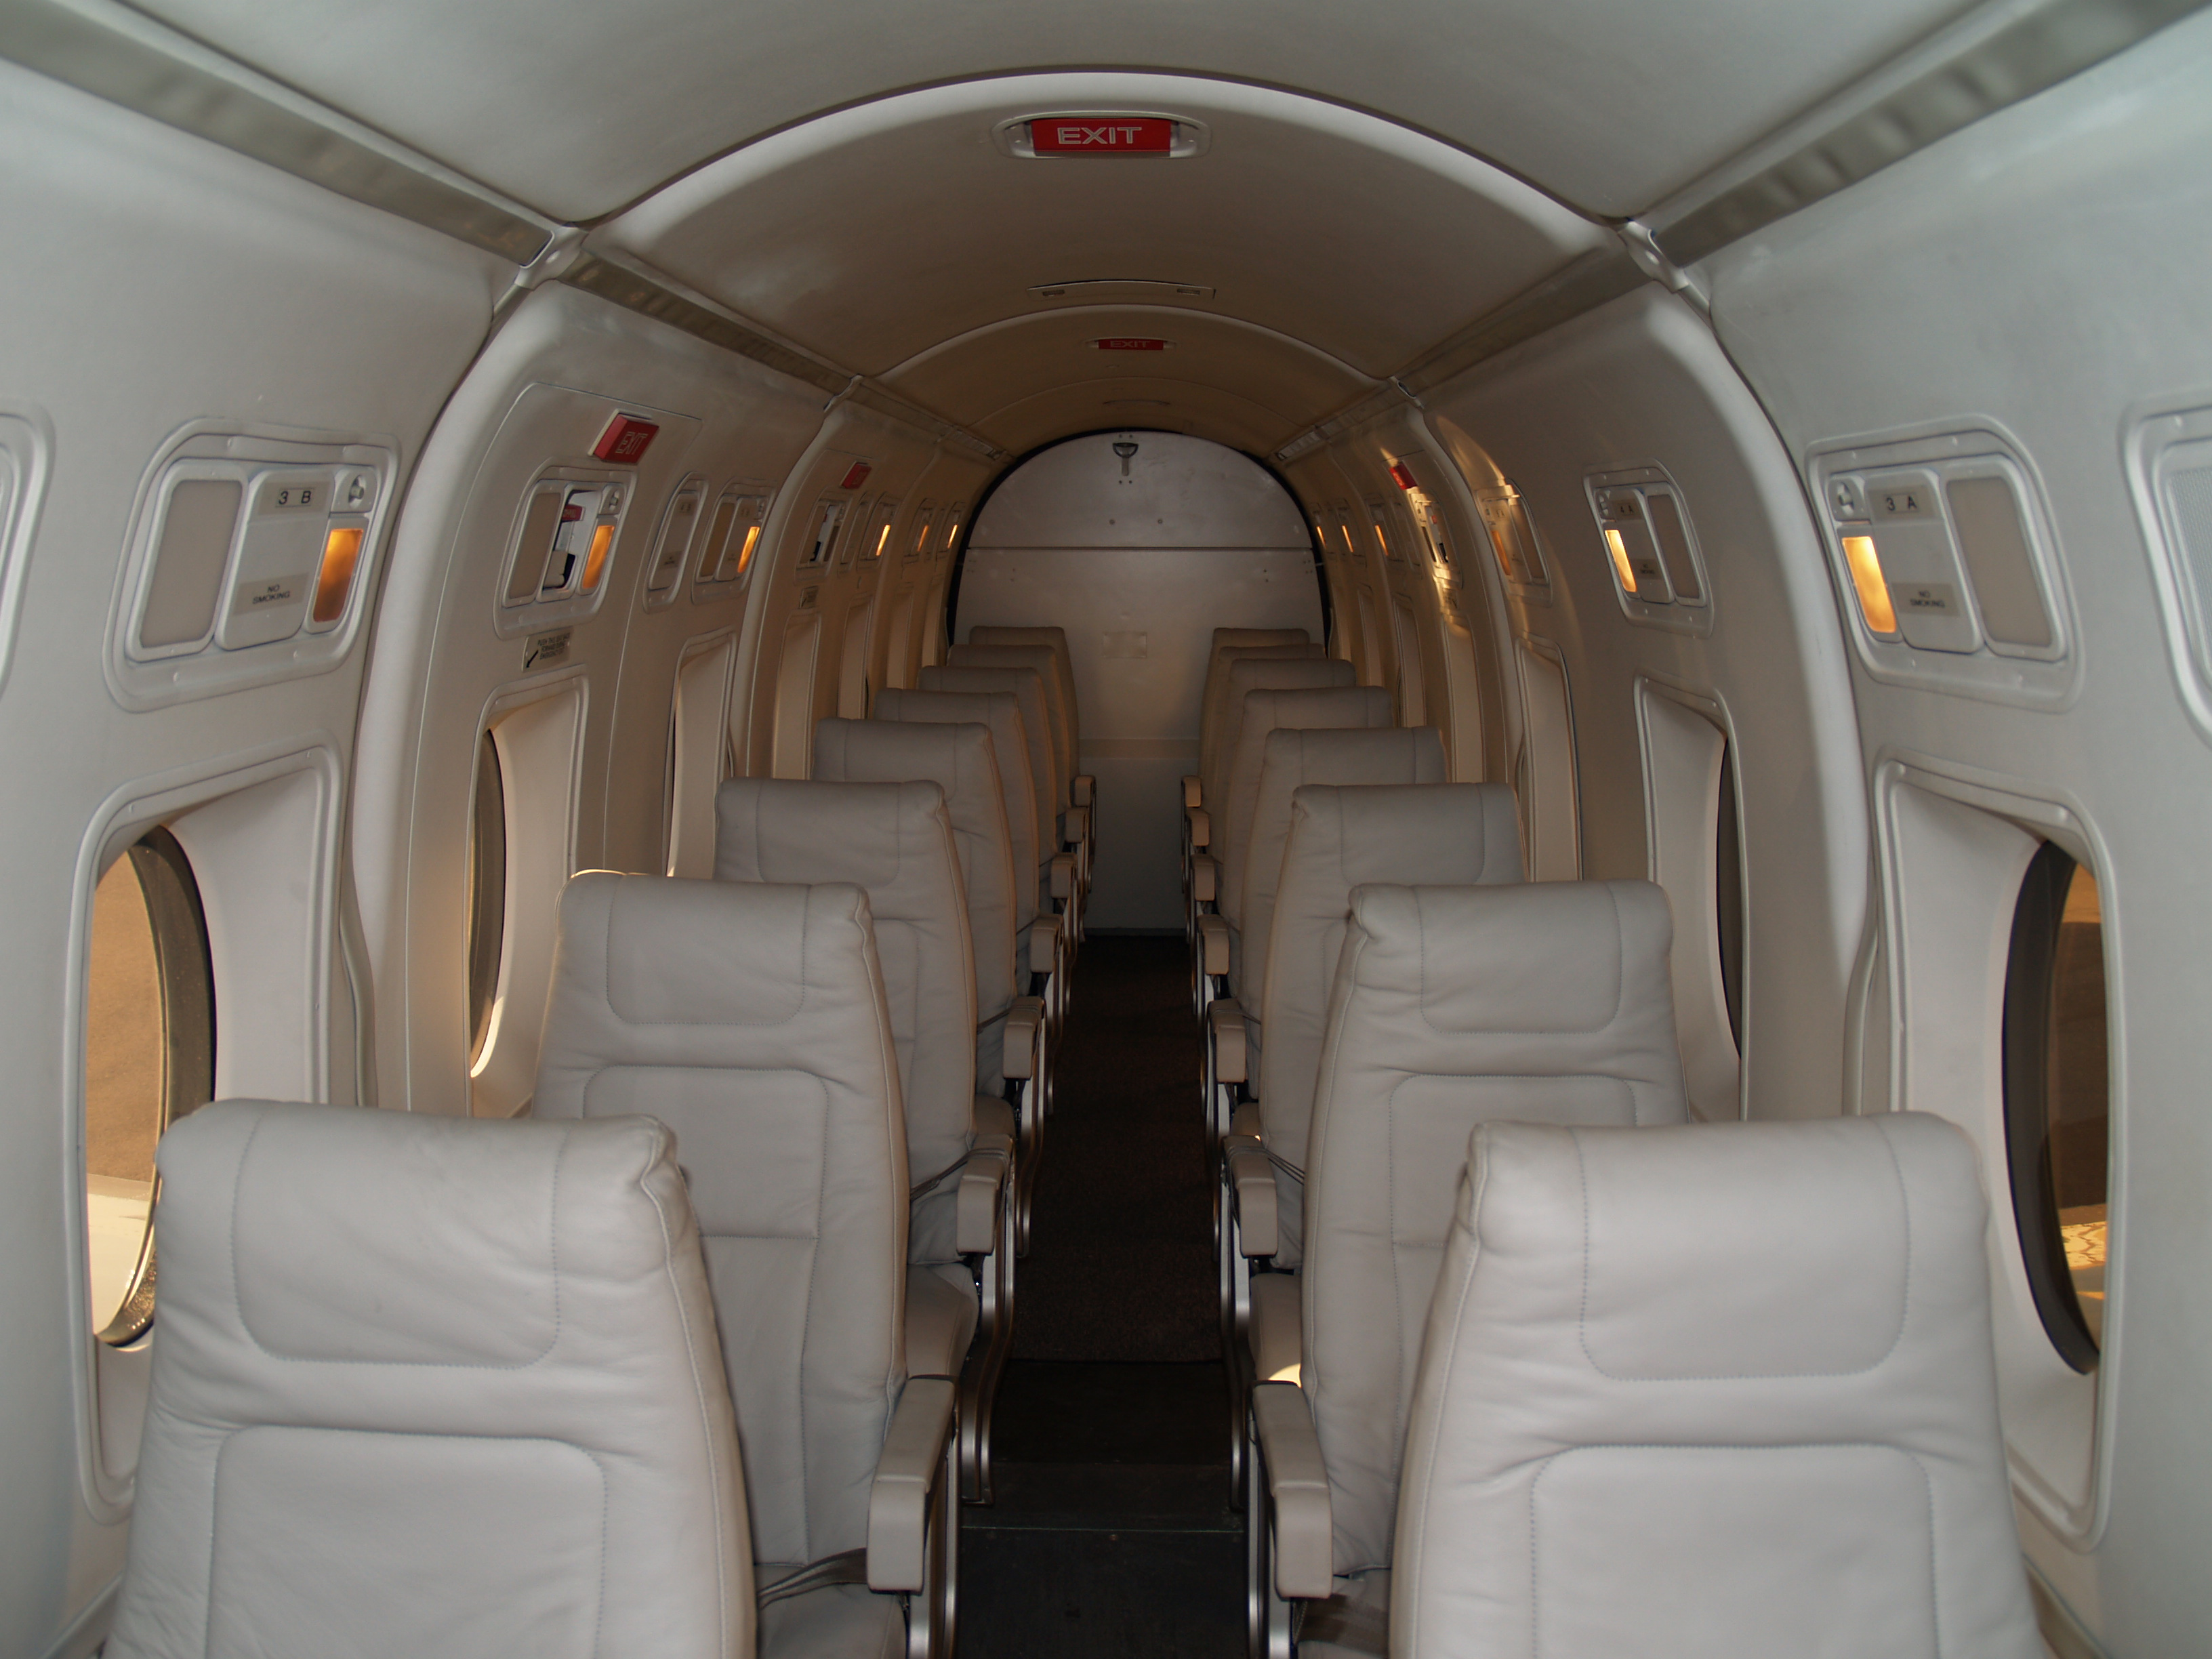 come fly with maverick airlines maverick aviation group recently launched a luxury air charter